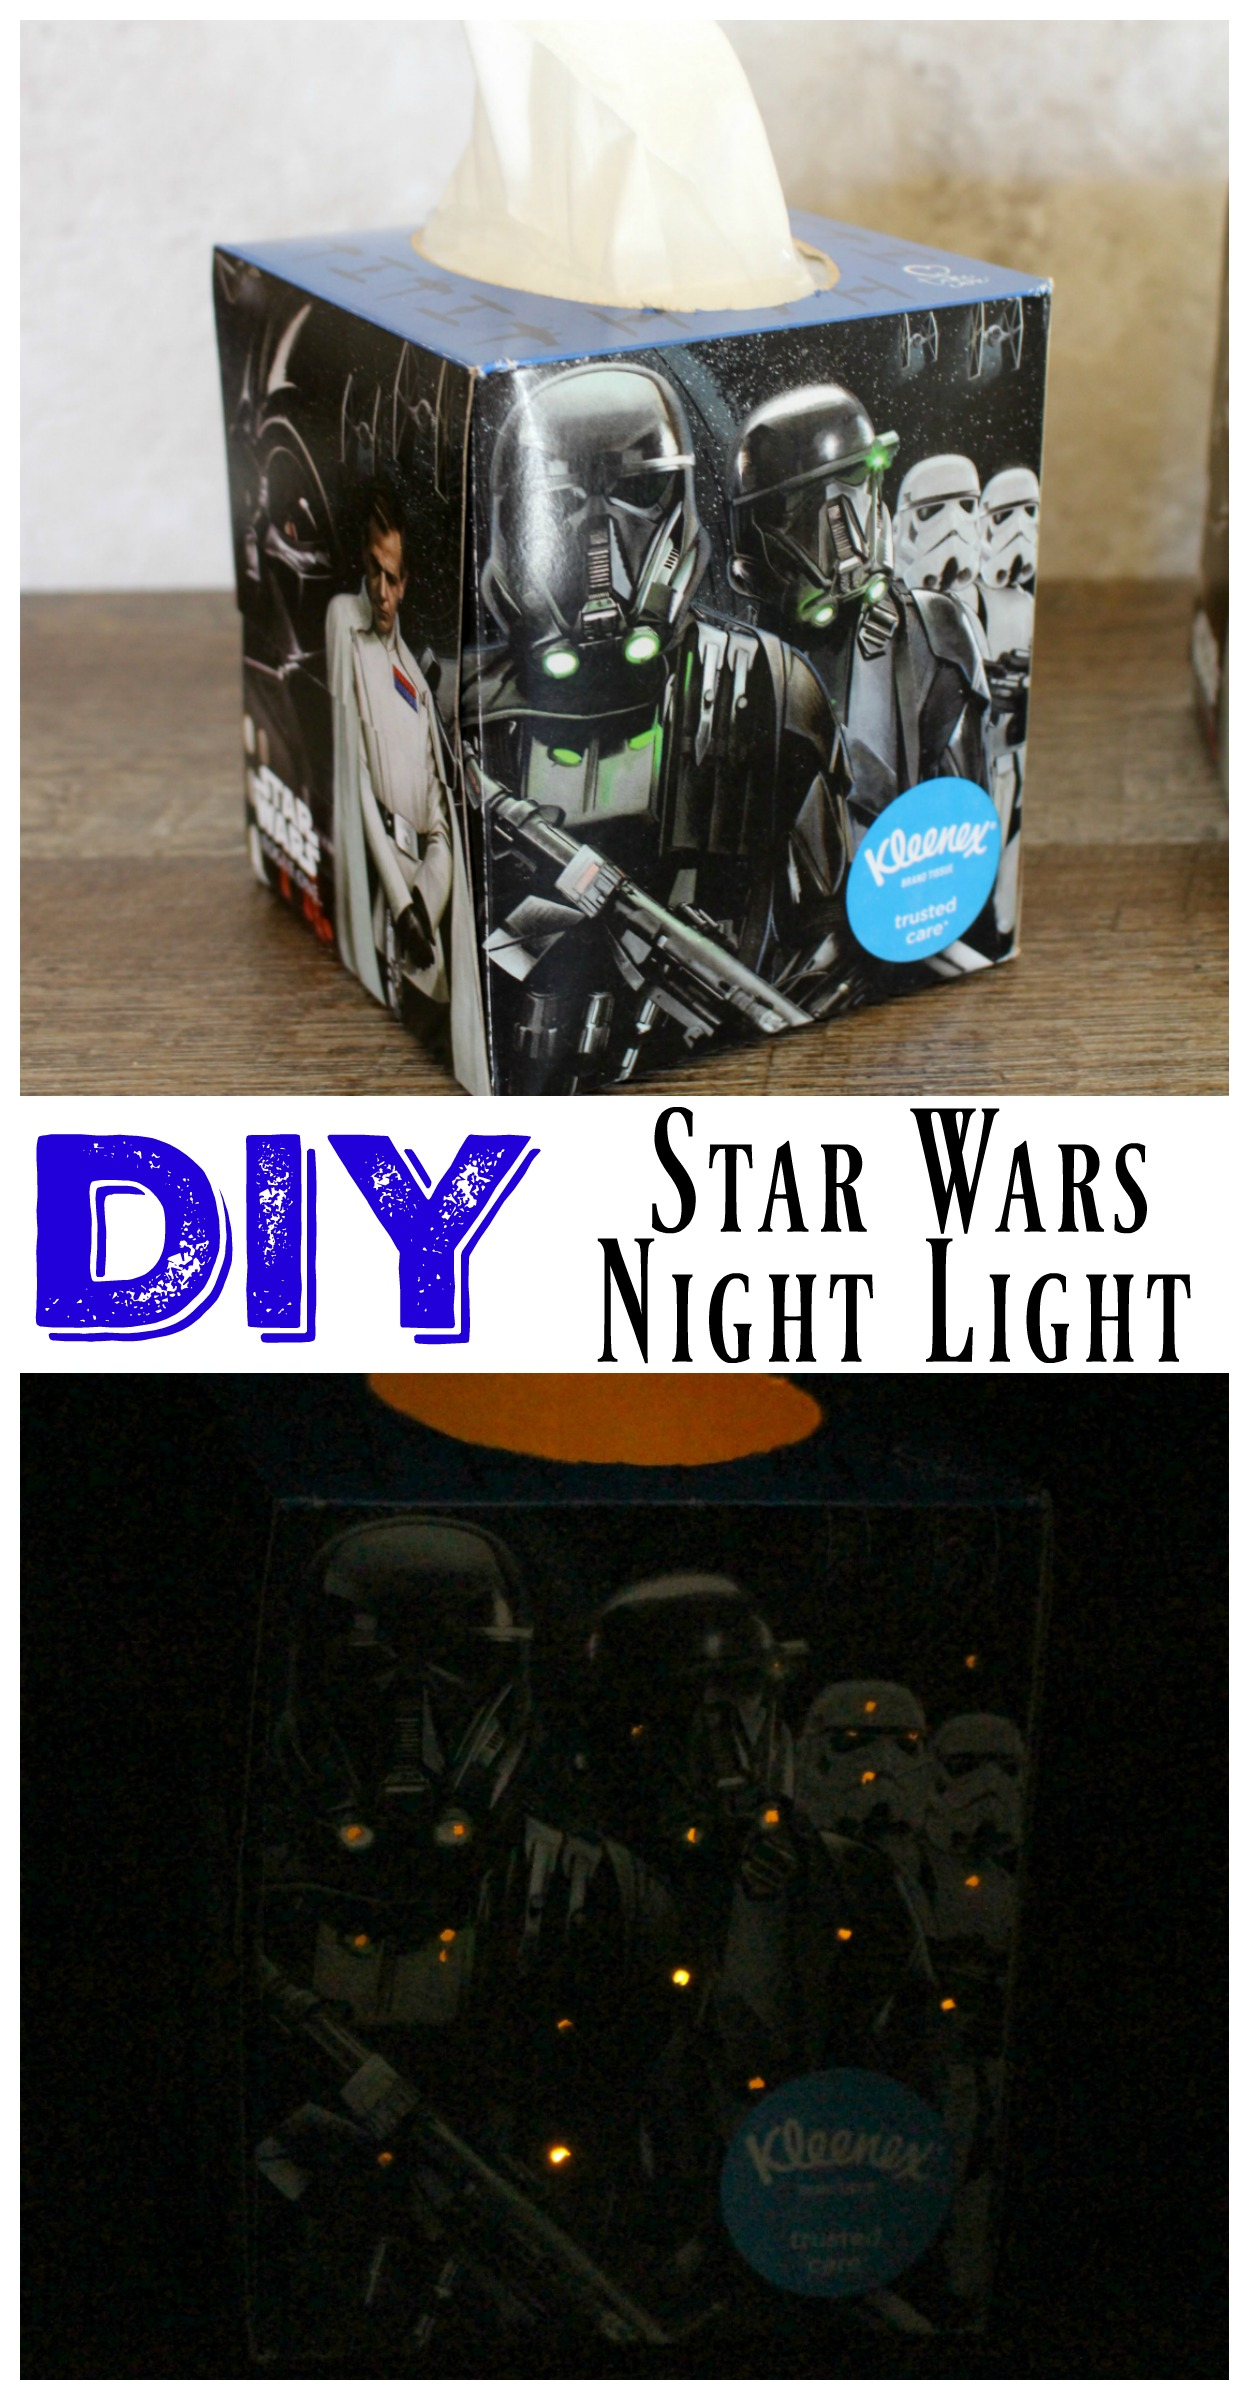 DIY Star Wars Nightlight